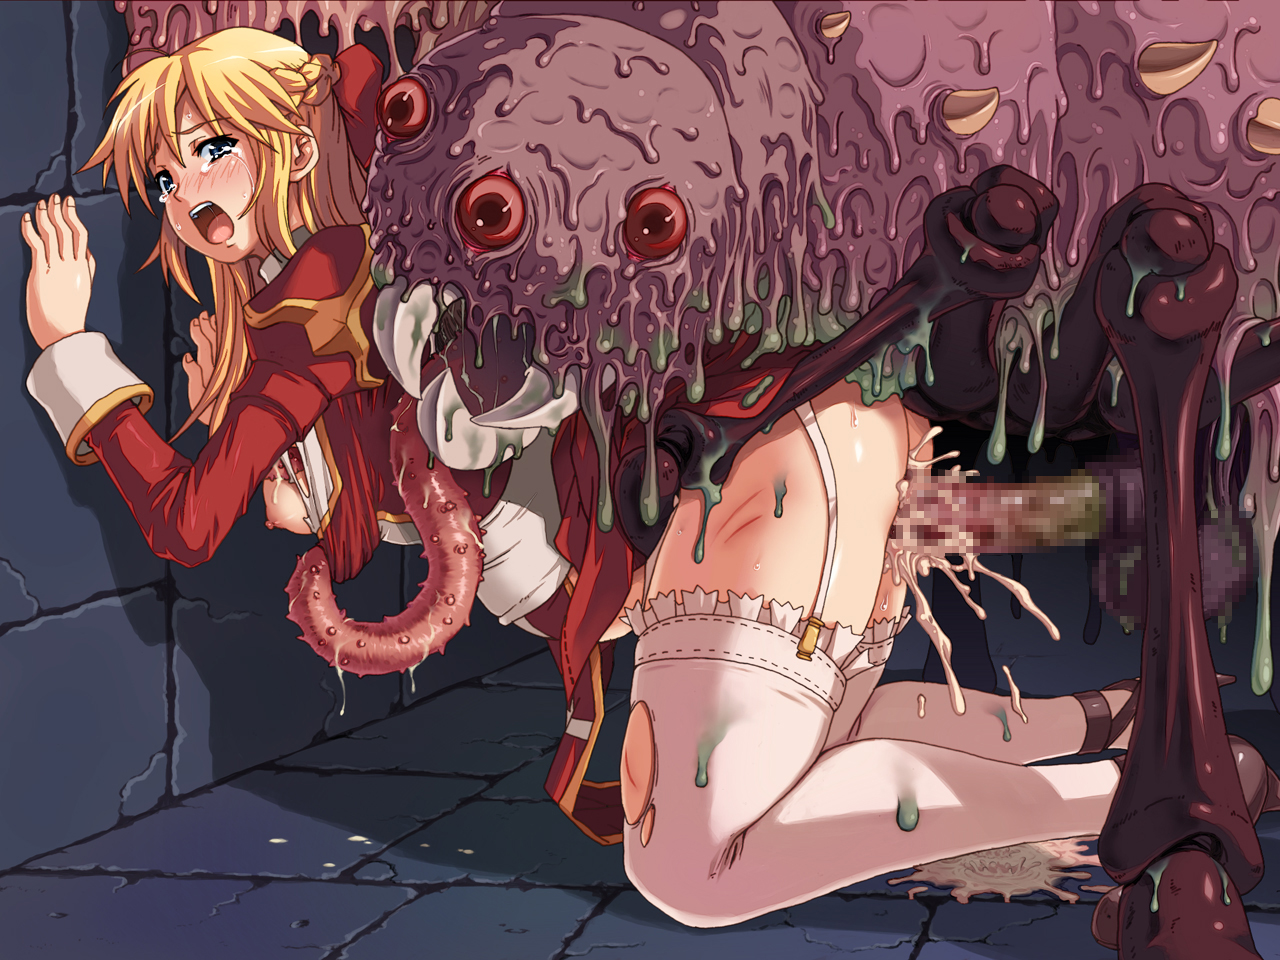 Hentai spider abuse sex clips